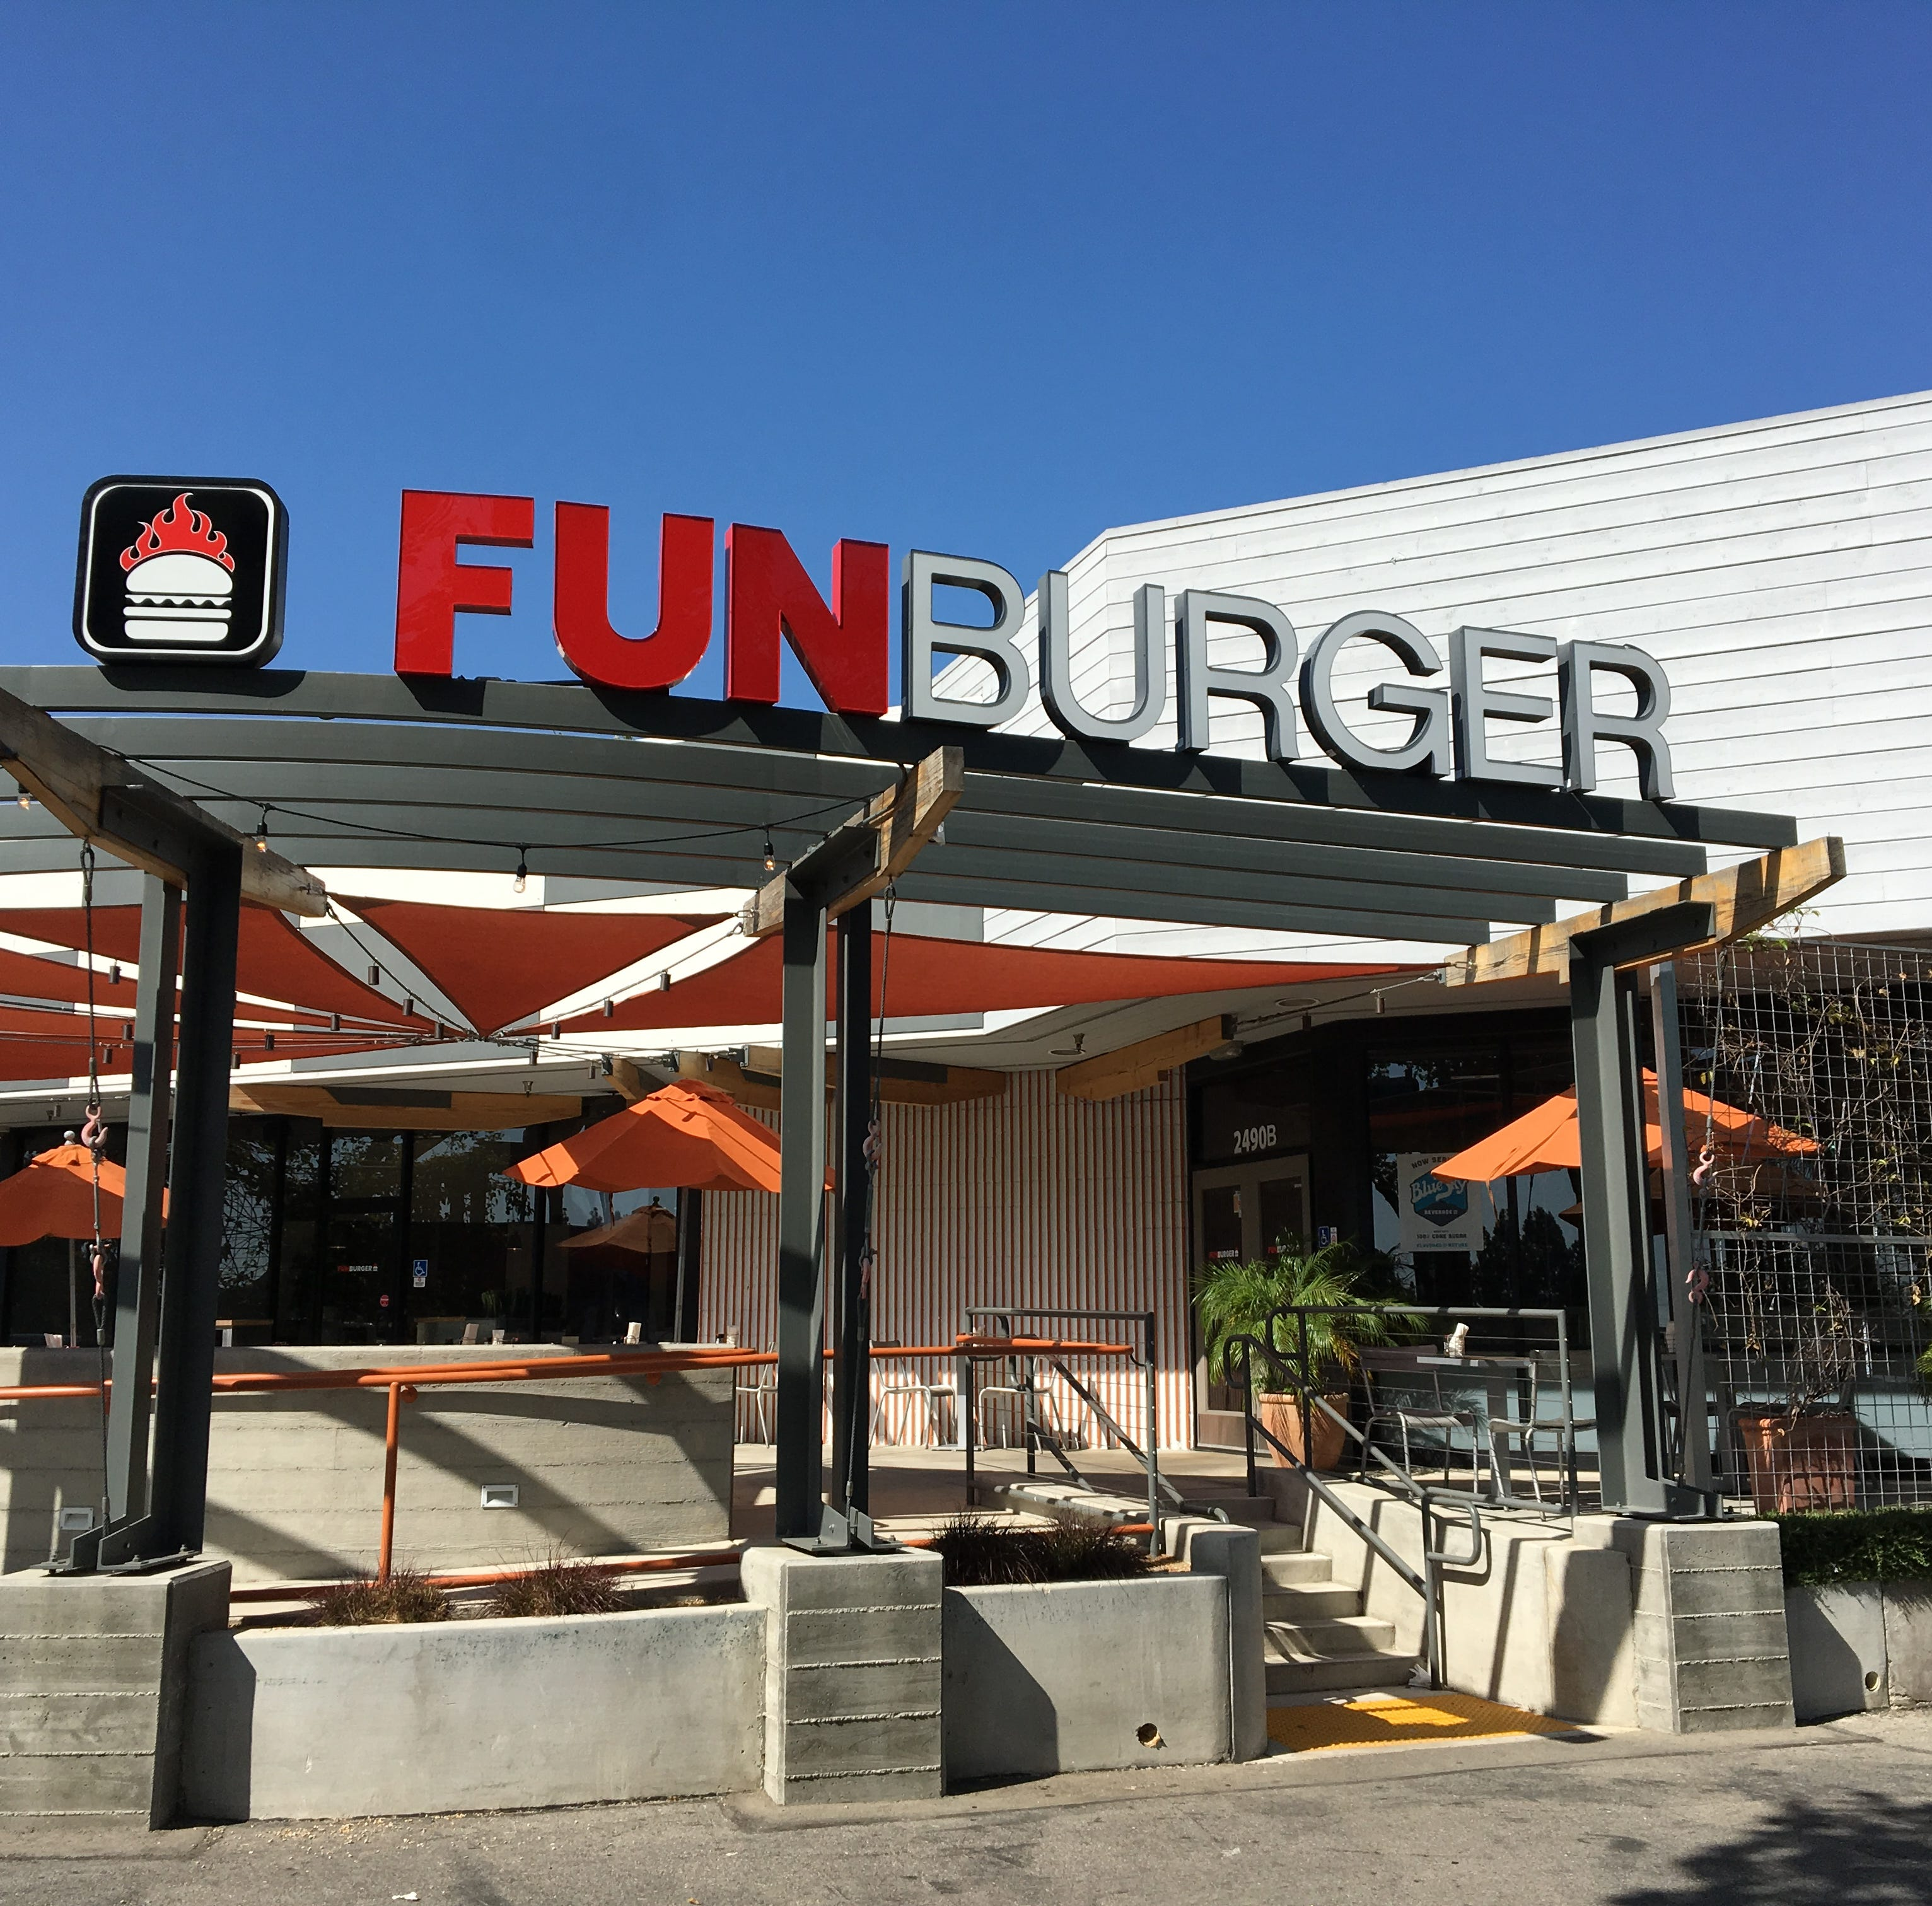 Open and shut: Fun Burger keeps it off the hook in Simi Valley